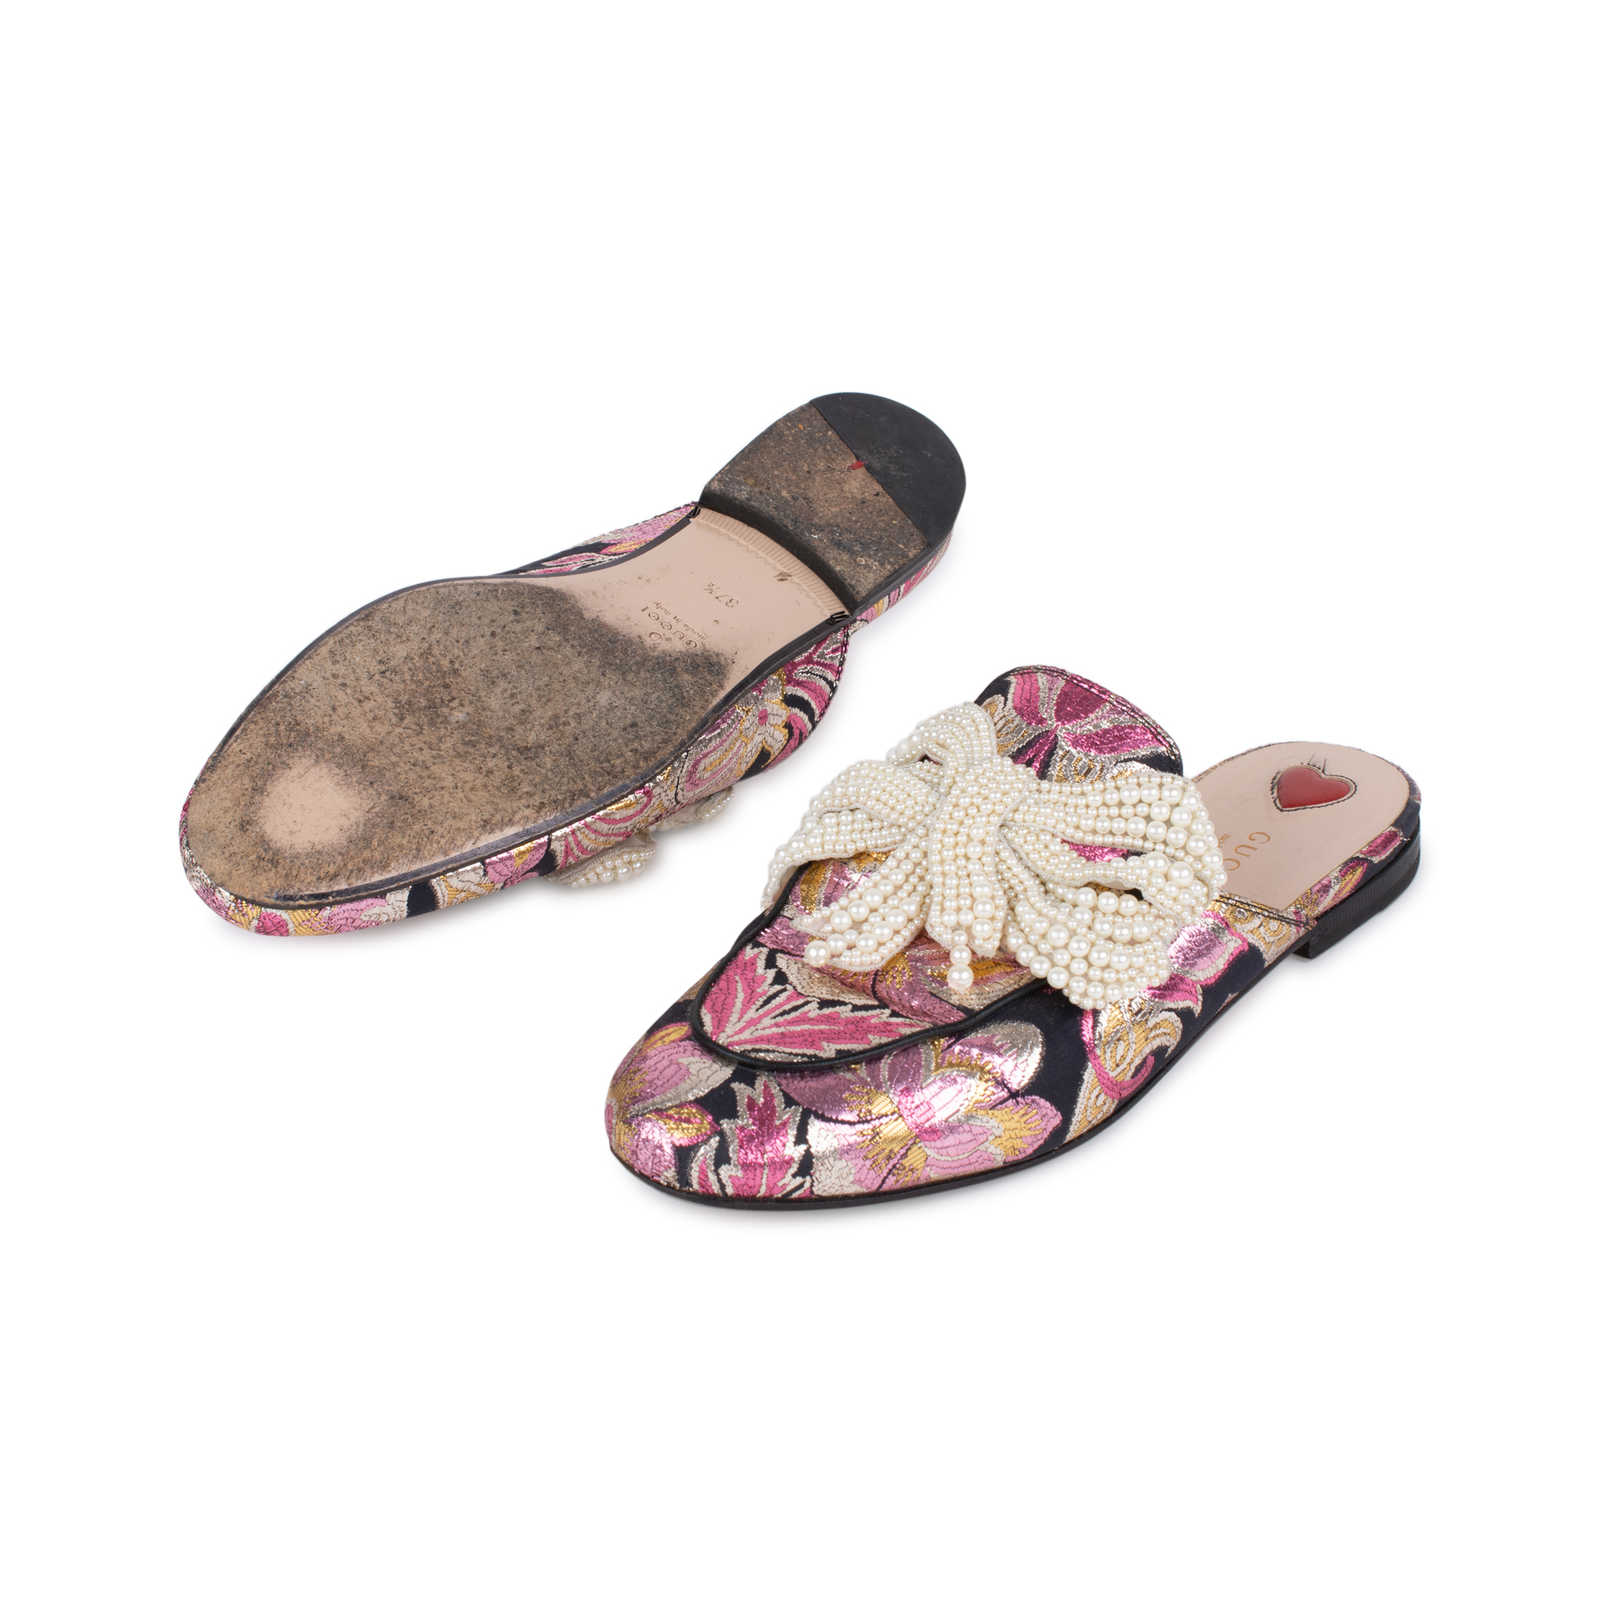 09067e7986d ... Authentic Second Hand Gucci Princetown Pearl Embellished Brocade  Slippers (PSS-197-00085) ...